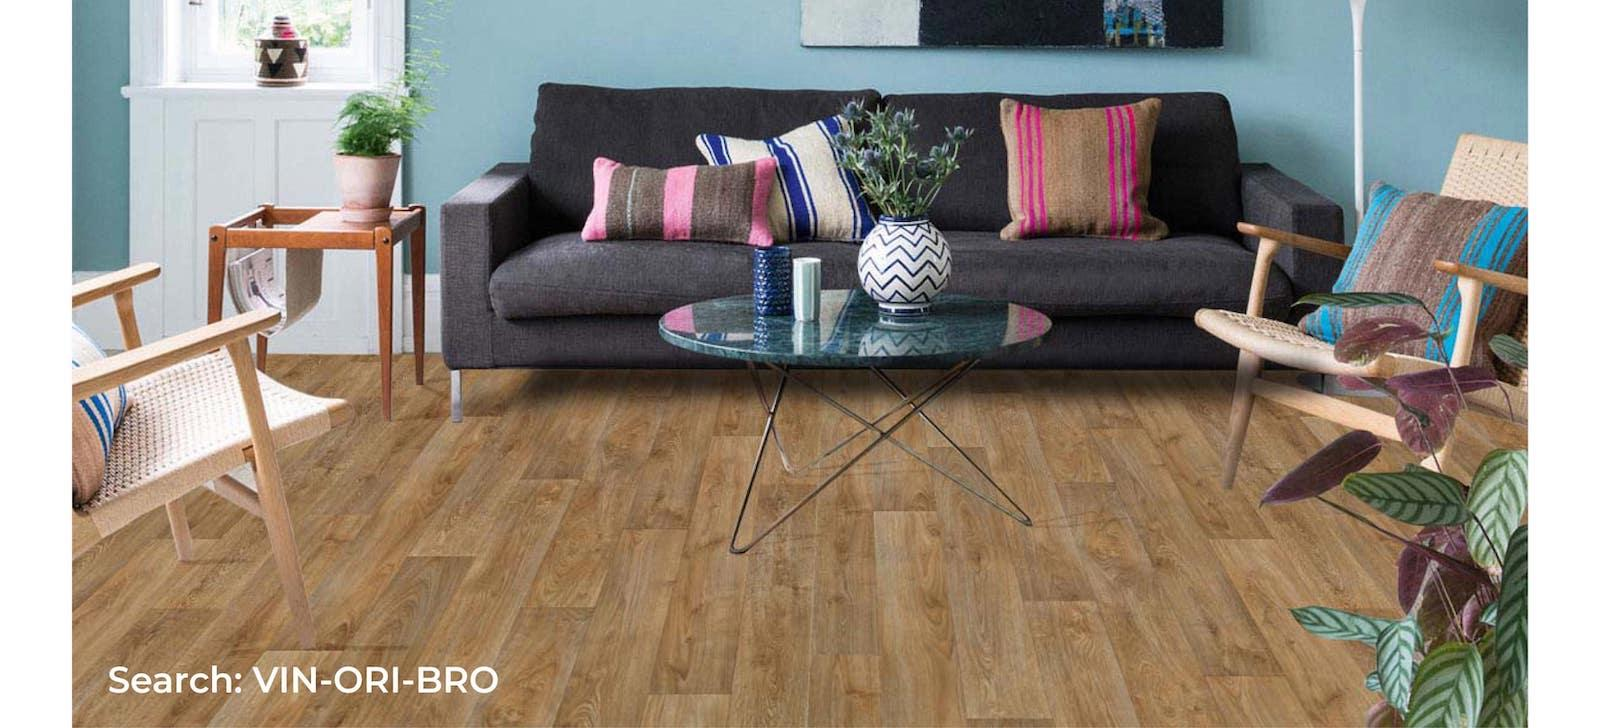 Colourful living room set with natural vinyl